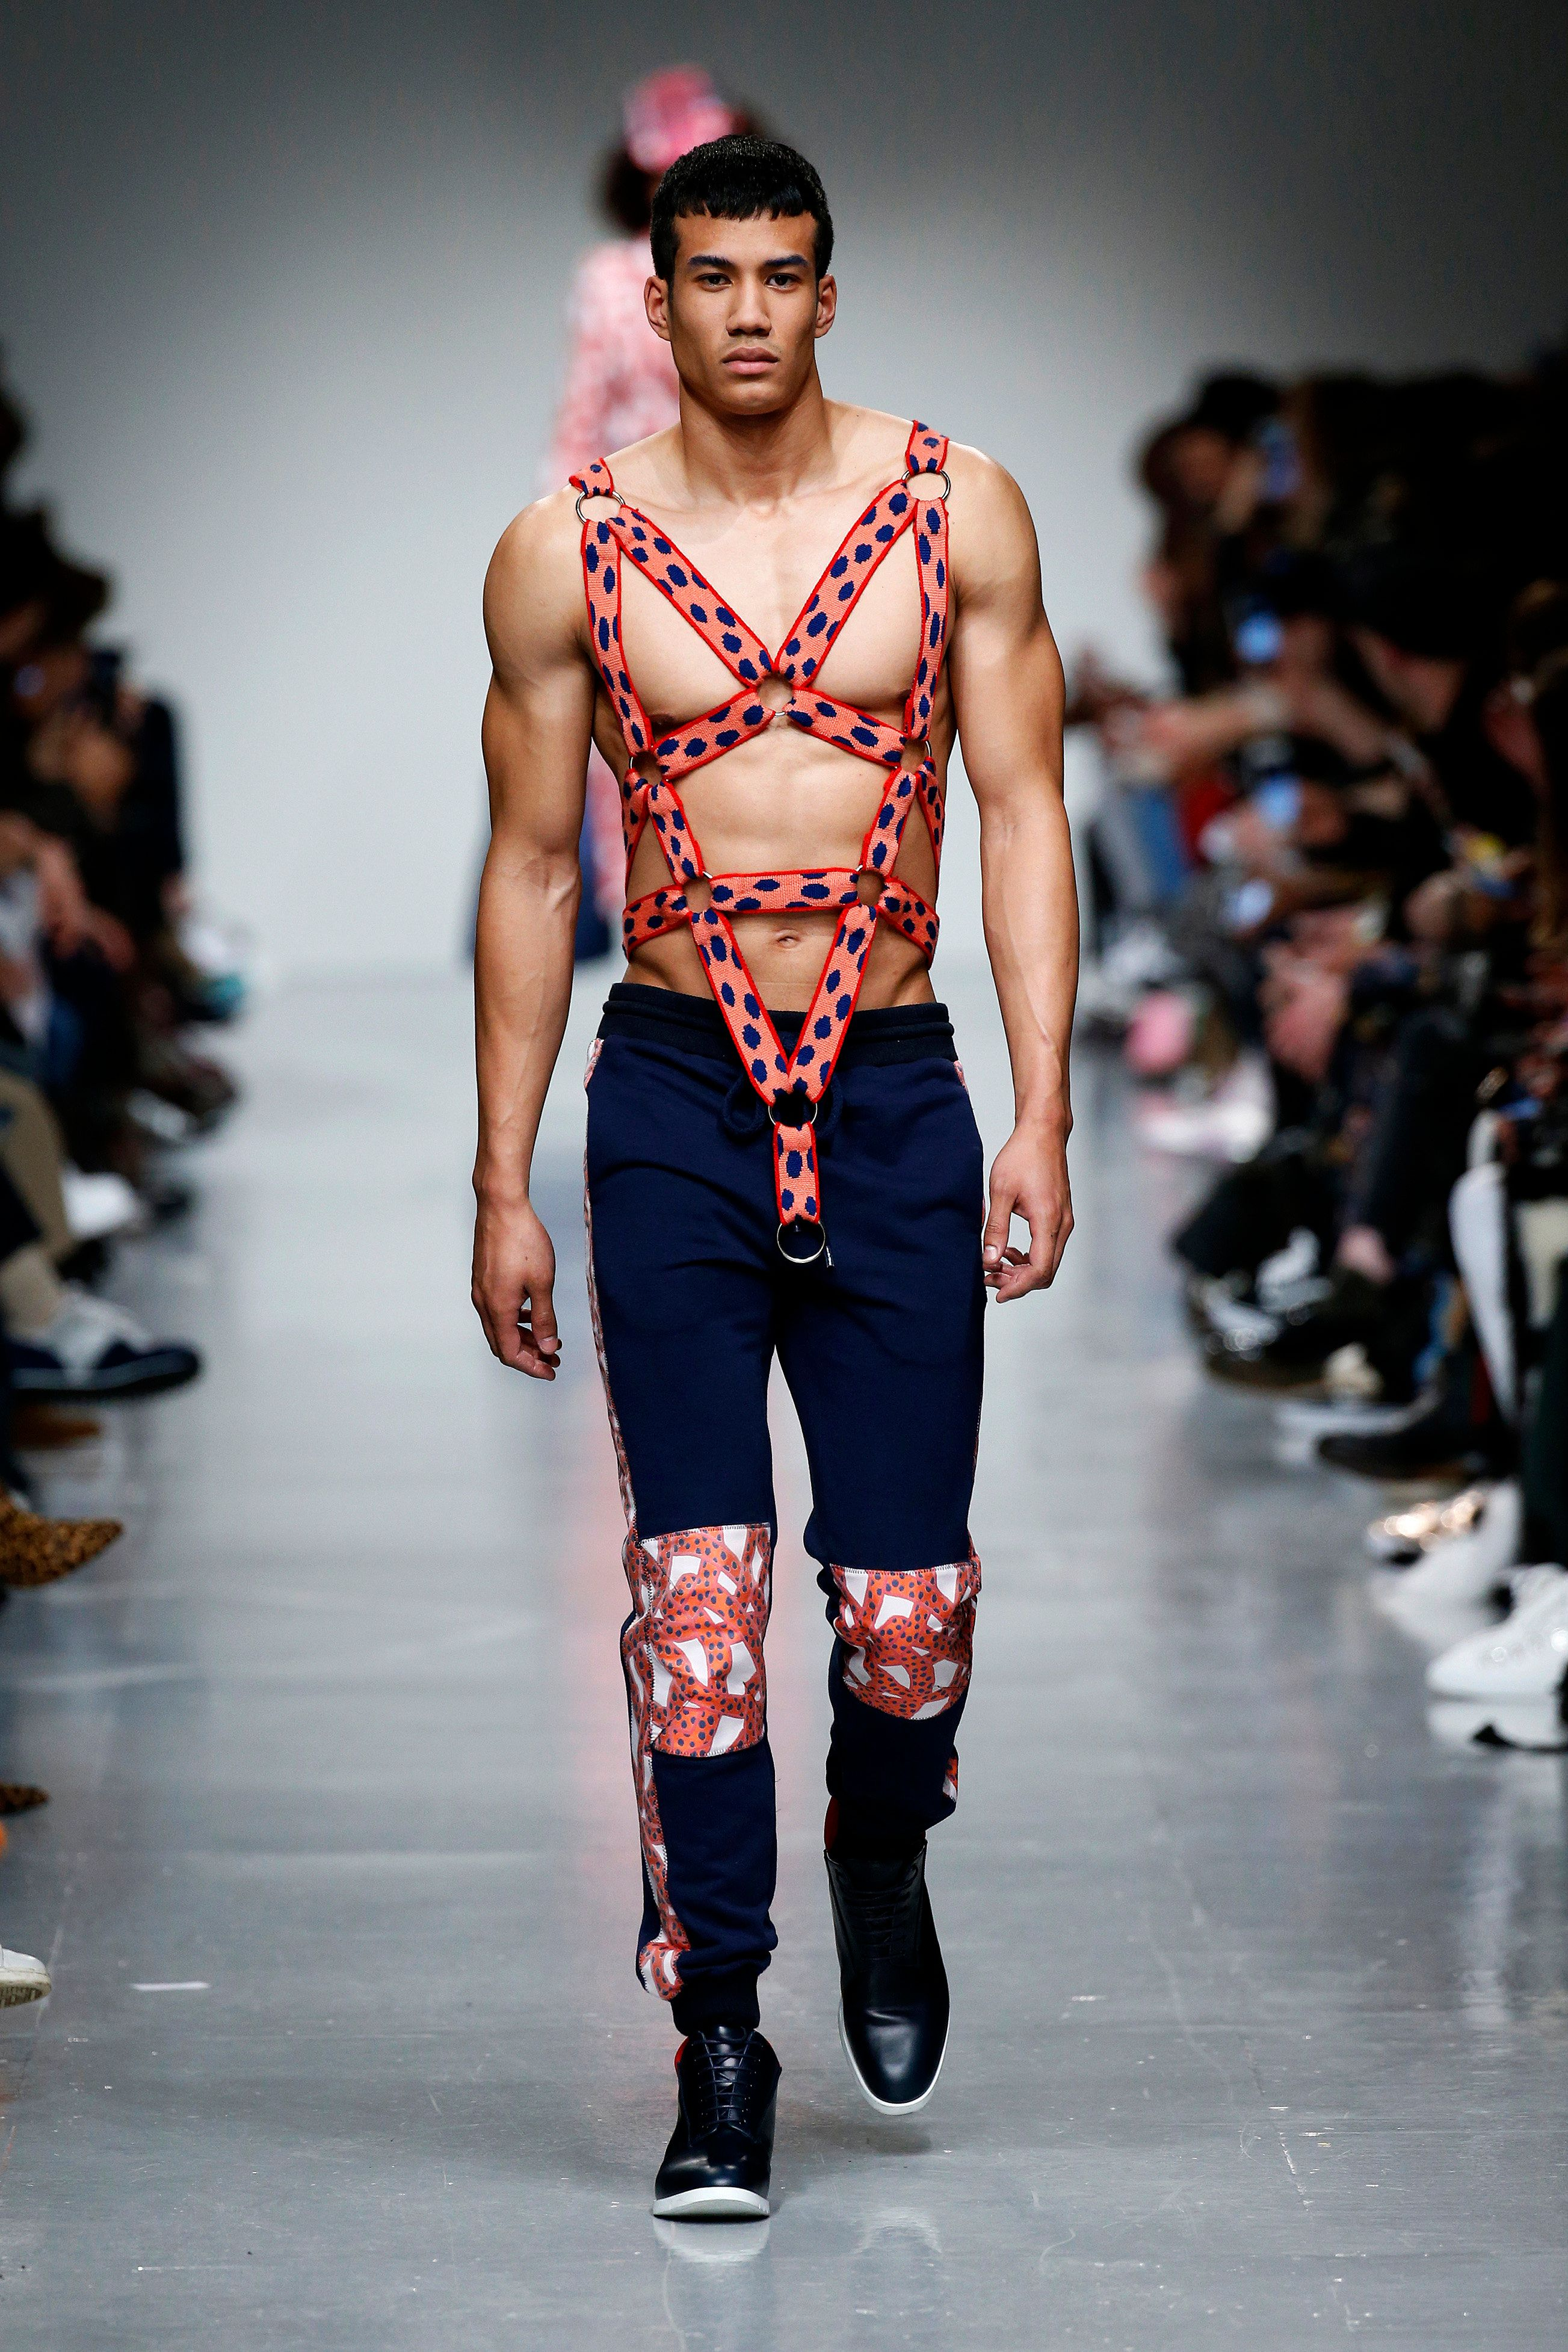 Spring 2019 Menswear Fashion shows - Vogue Latest men fashion shows